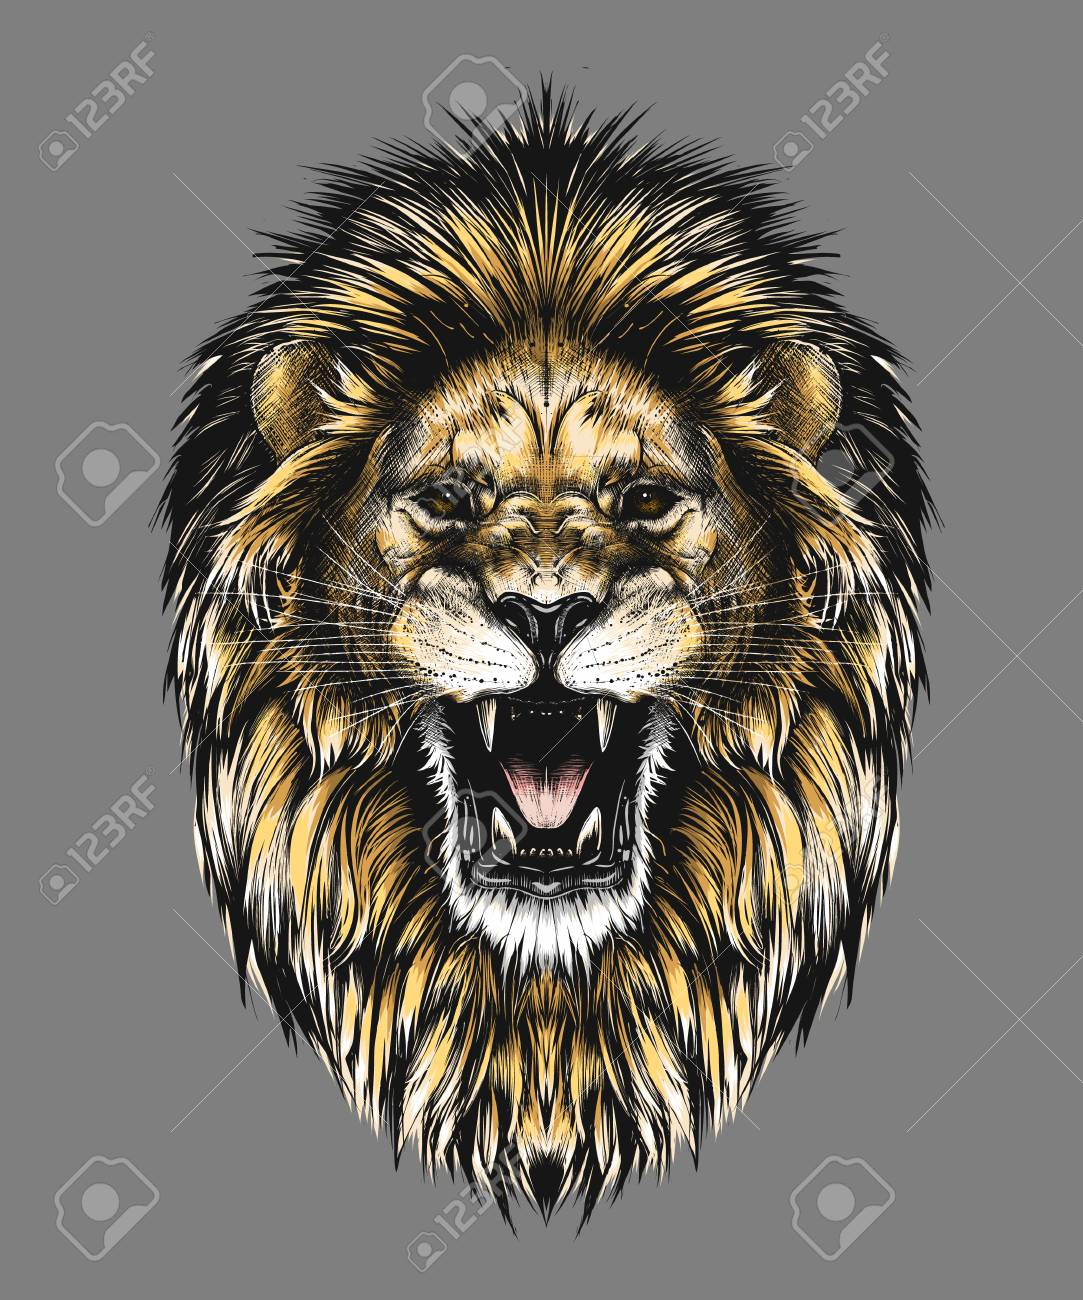 Hand drawn sketch of lion head in color isolated on gray background. Detailed vintage style drawing. Vector illustration for posters and print - 121873302